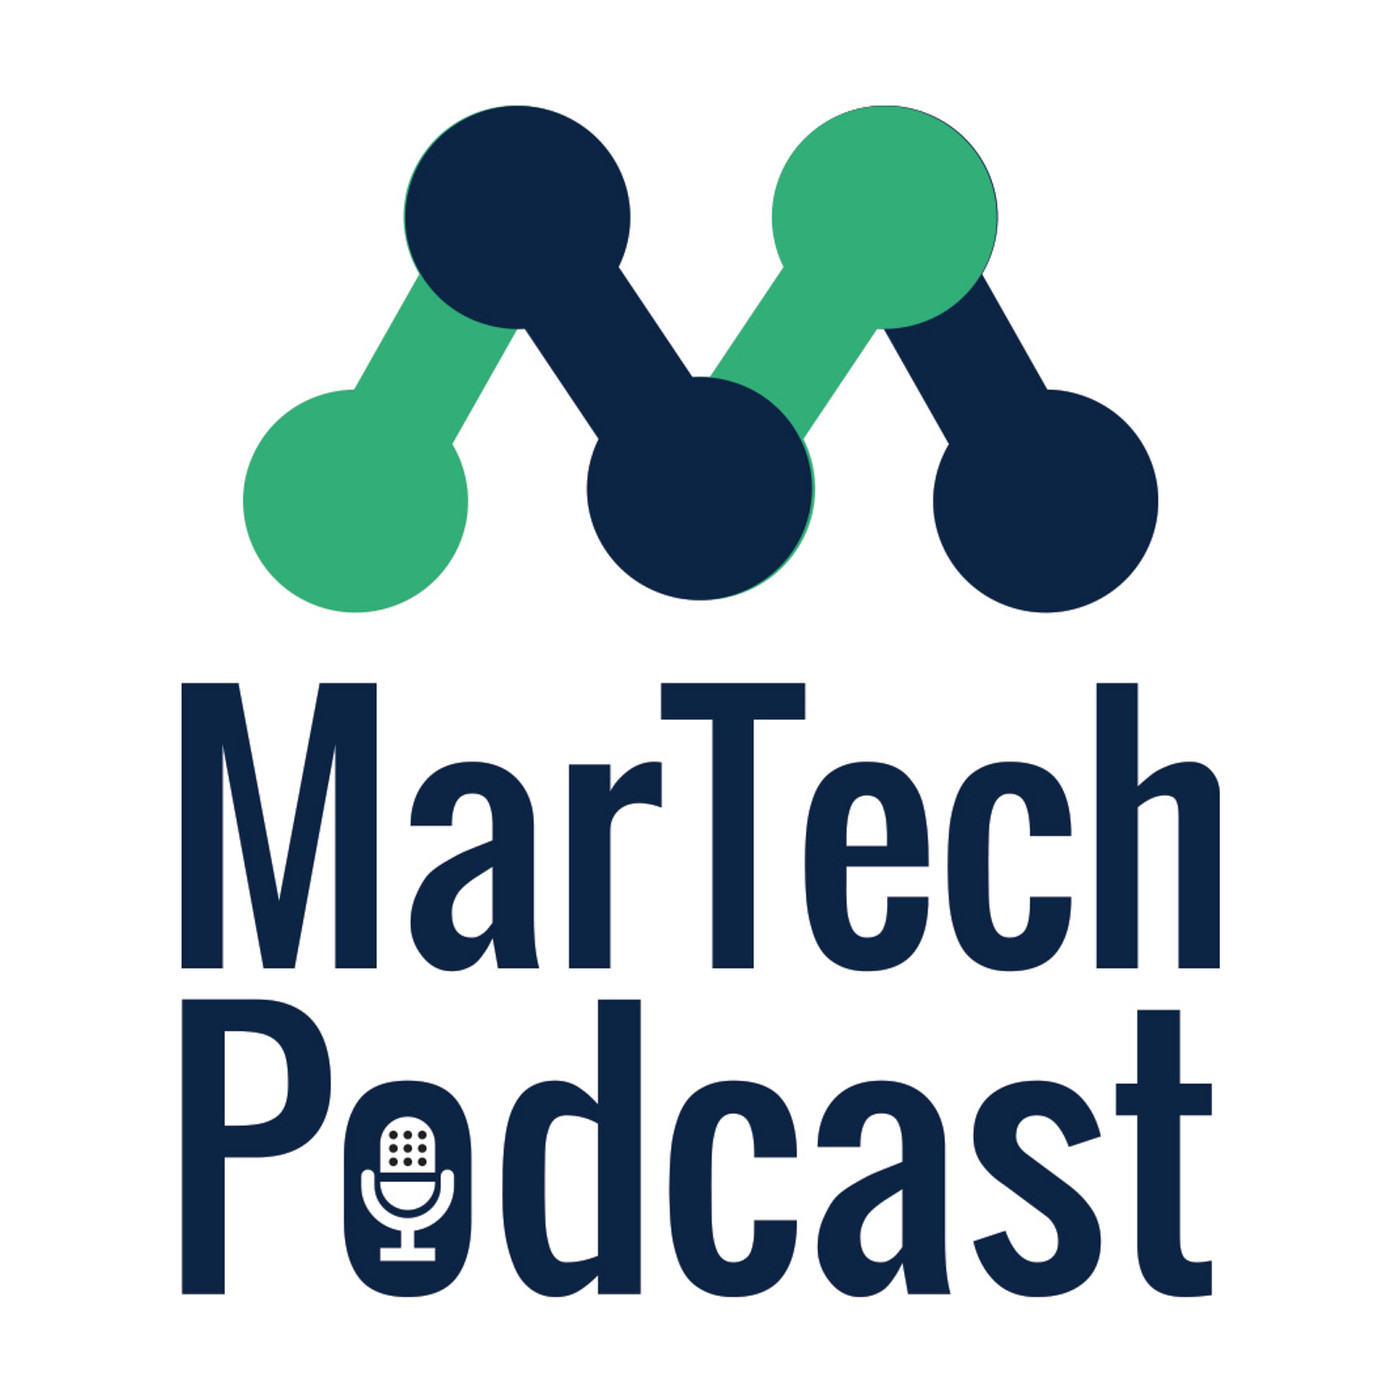 MarTech Podcast // Marketing + Technology = Business Growth